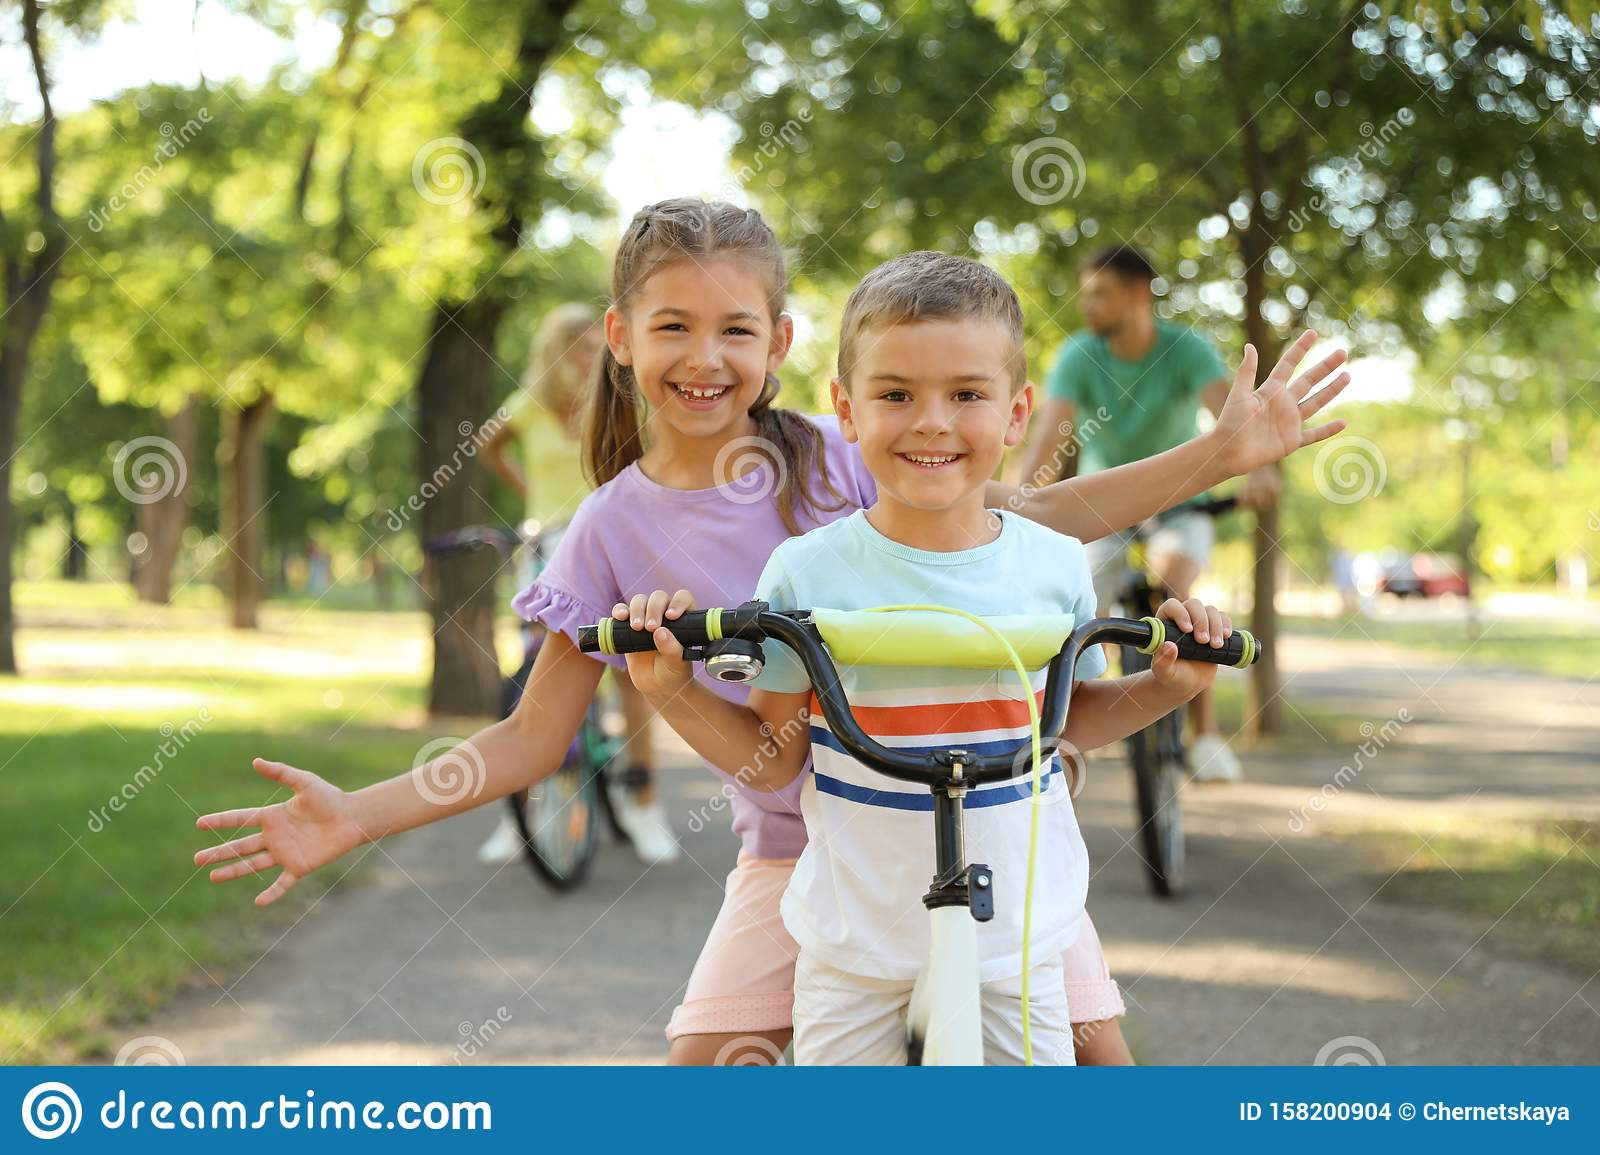 Happy siblings and their riding bicycles in park